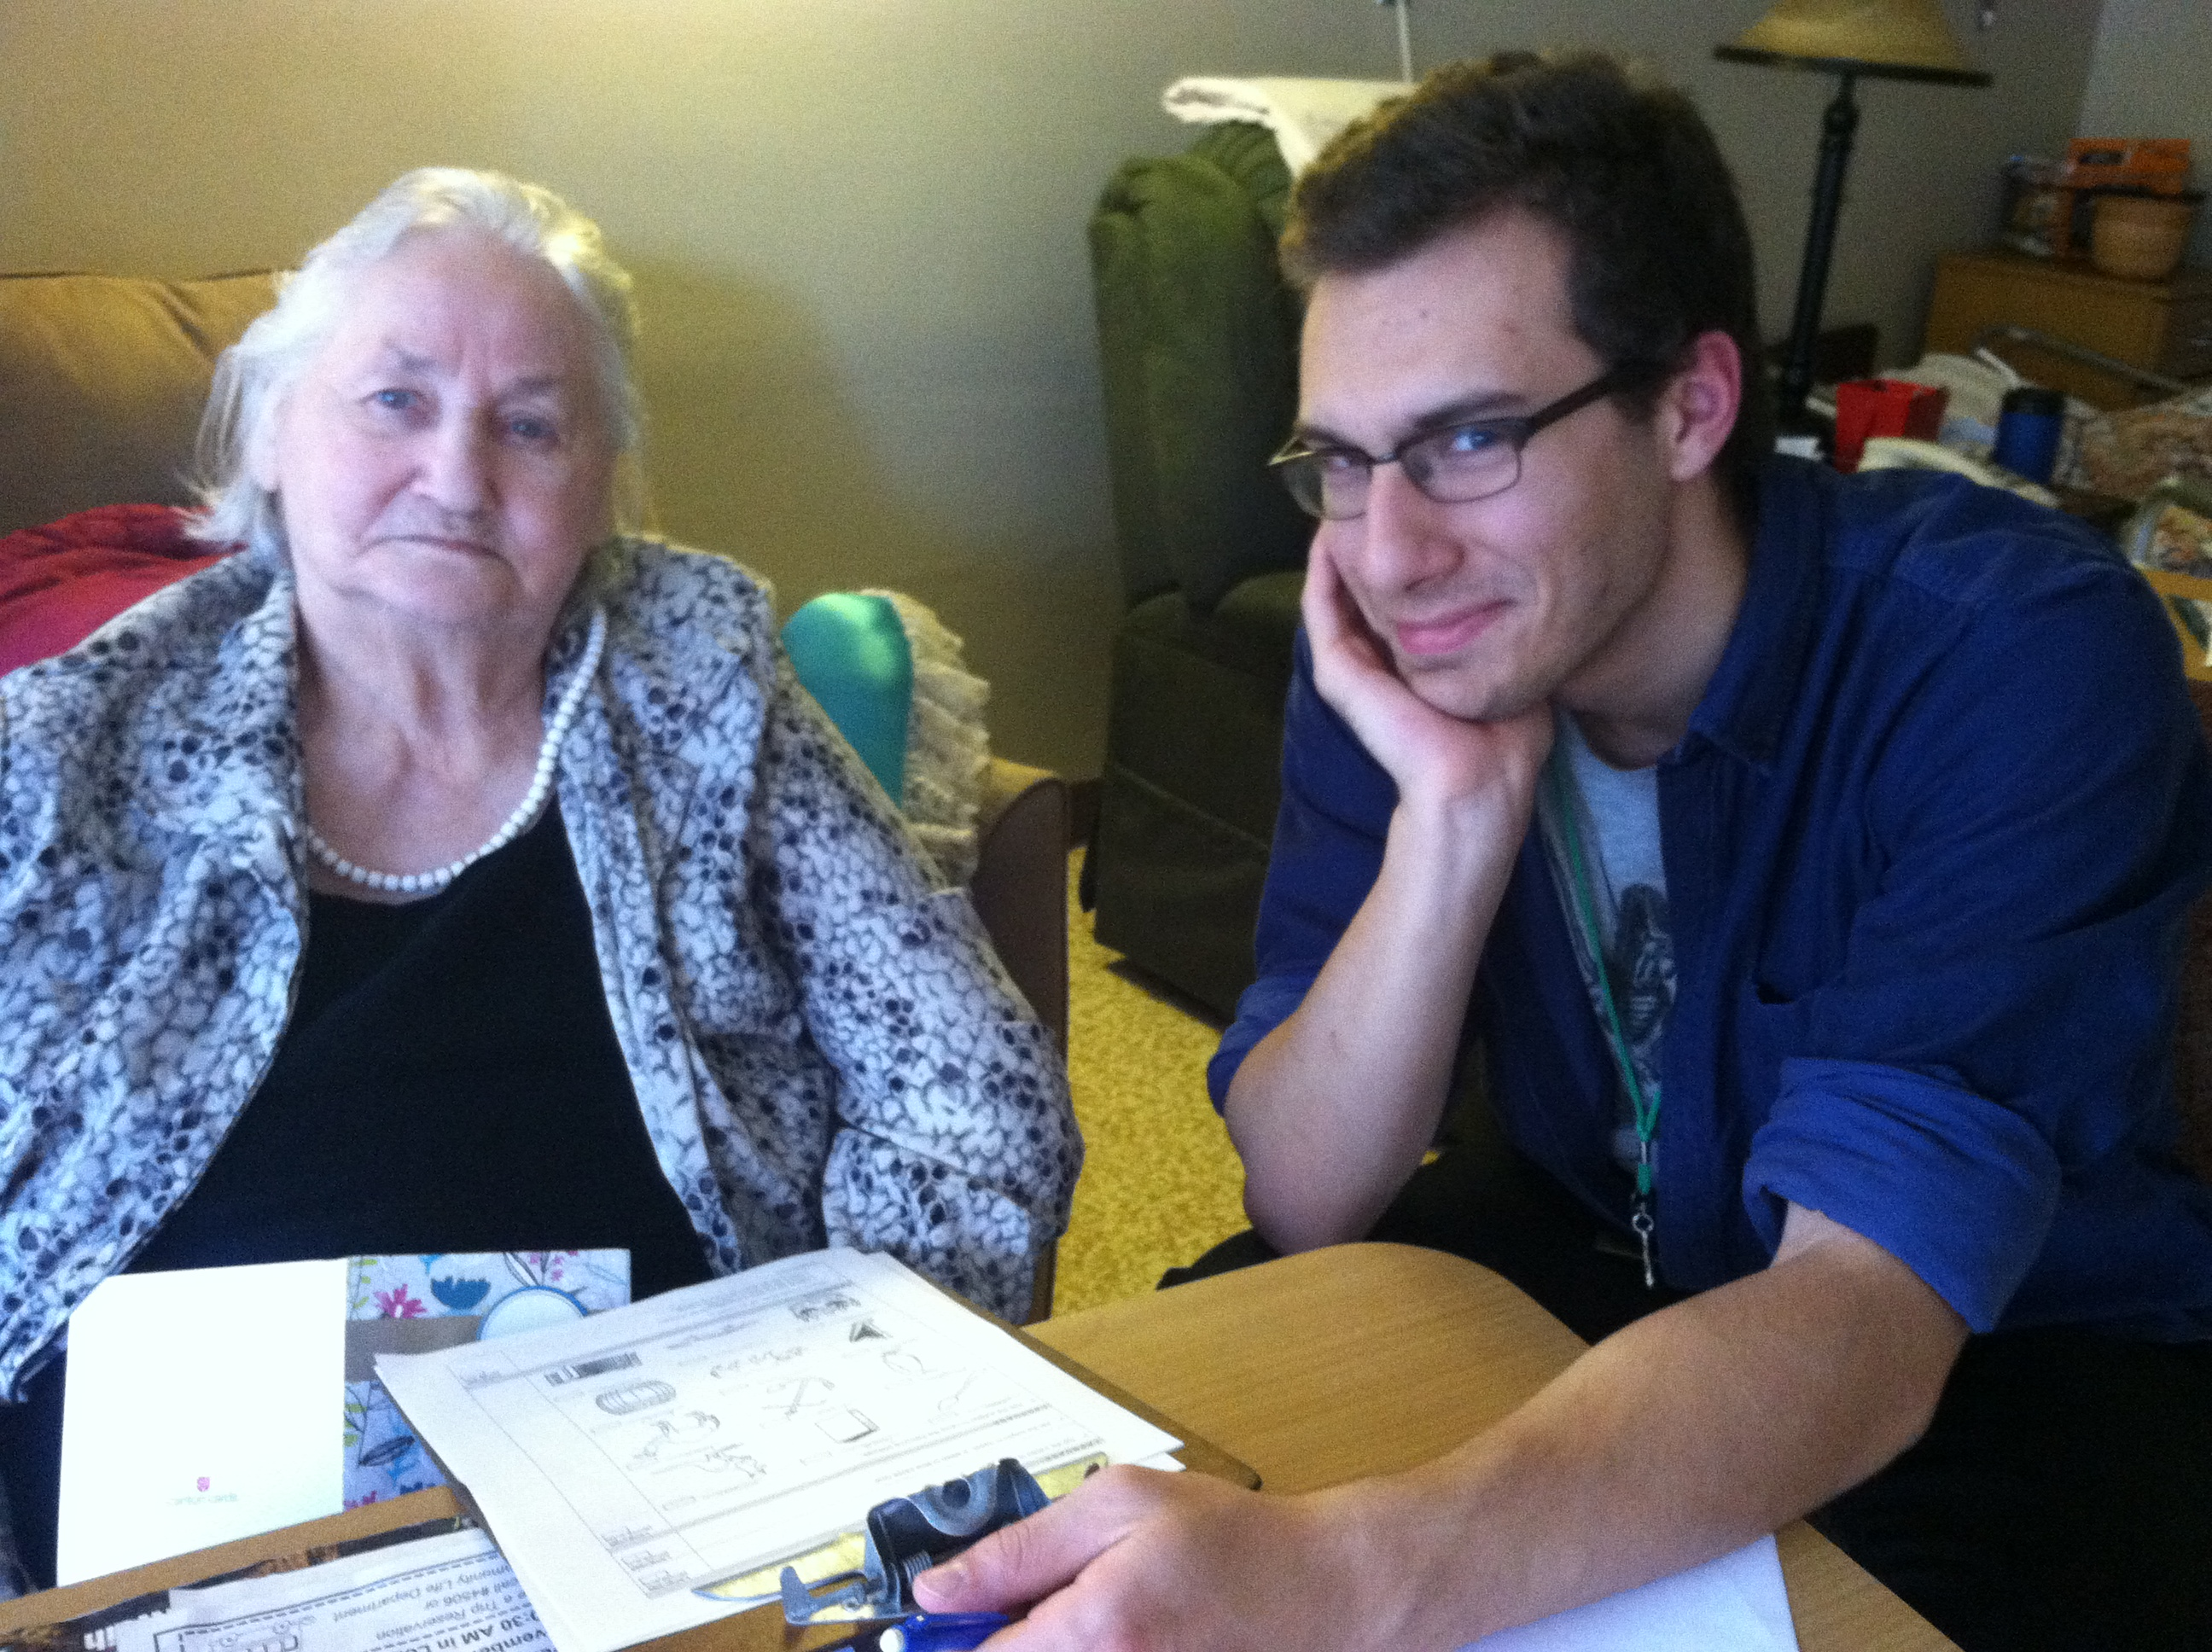 Ben Seitz with a resident of the Pheobe Richland Home